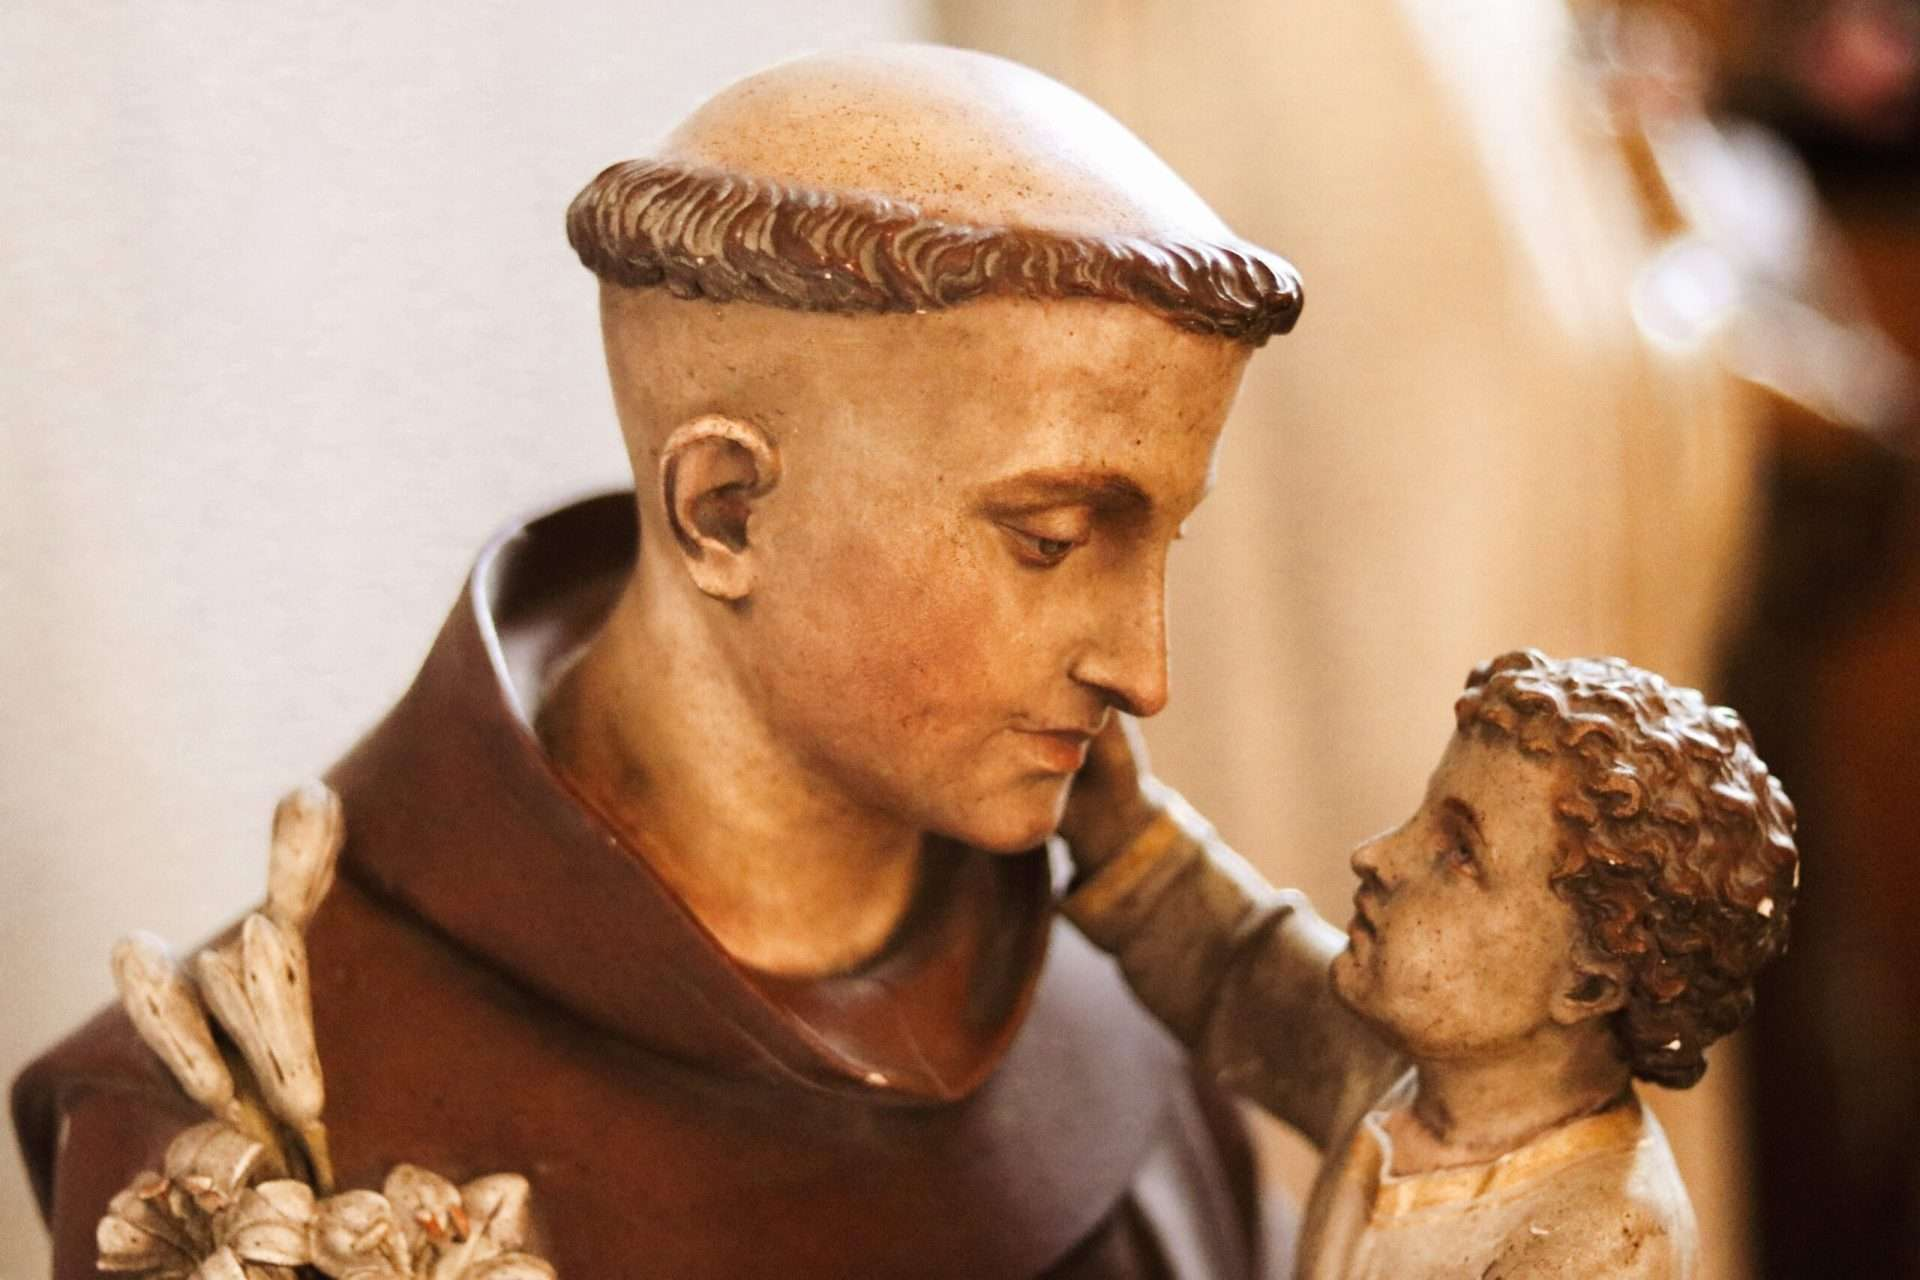 Why is Saint Anthony depicted holding the Child Jesus?